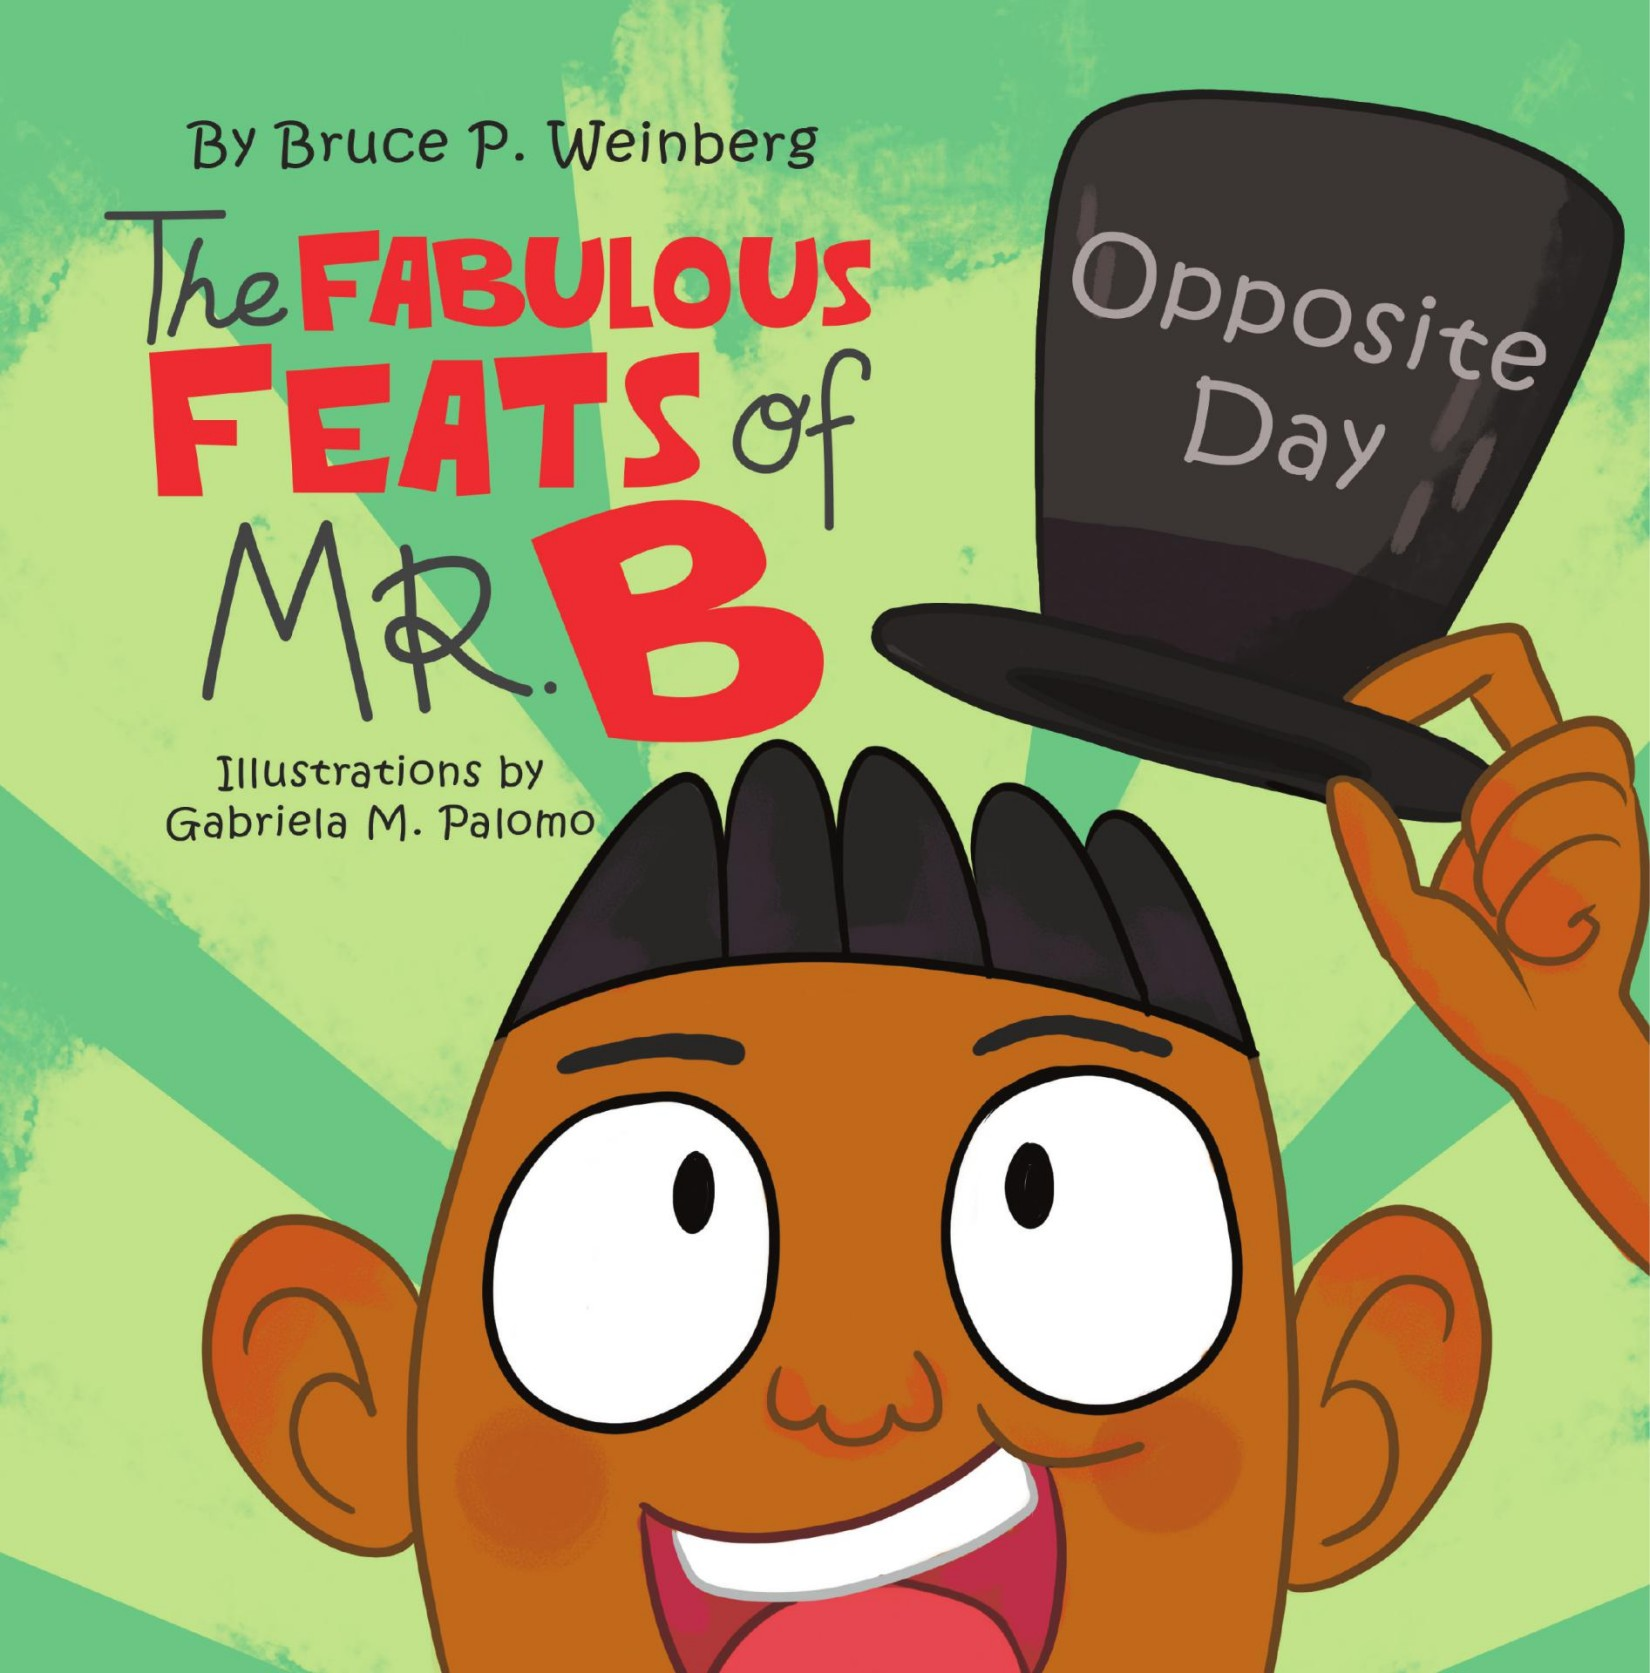 New children's book about opposites becomes #1 Amazon best seller & receives rave reviews